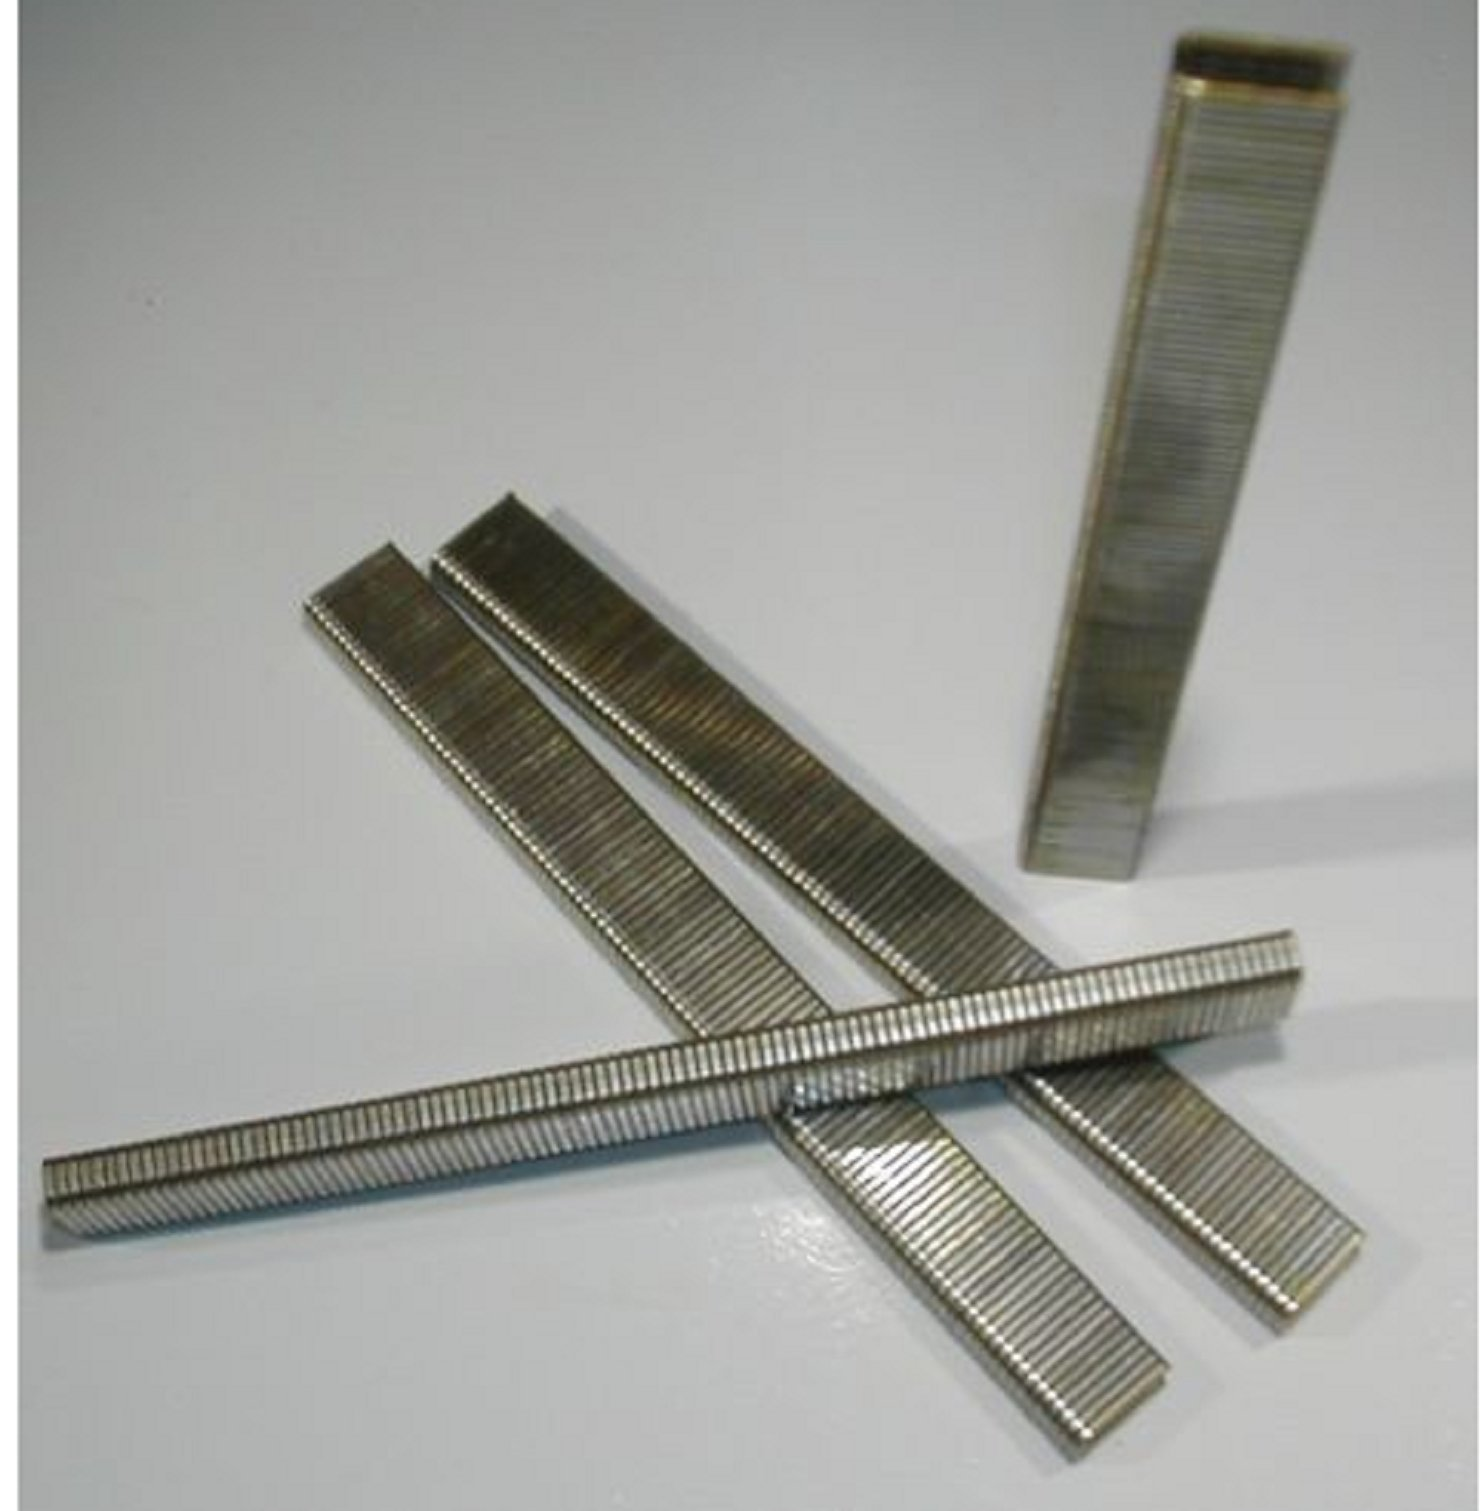 USA Premium Store 1/4'' Inch Narrow Crown Staples 18 gauge 5/8'' Inch Long (5,000 pcs) GALVANIZED